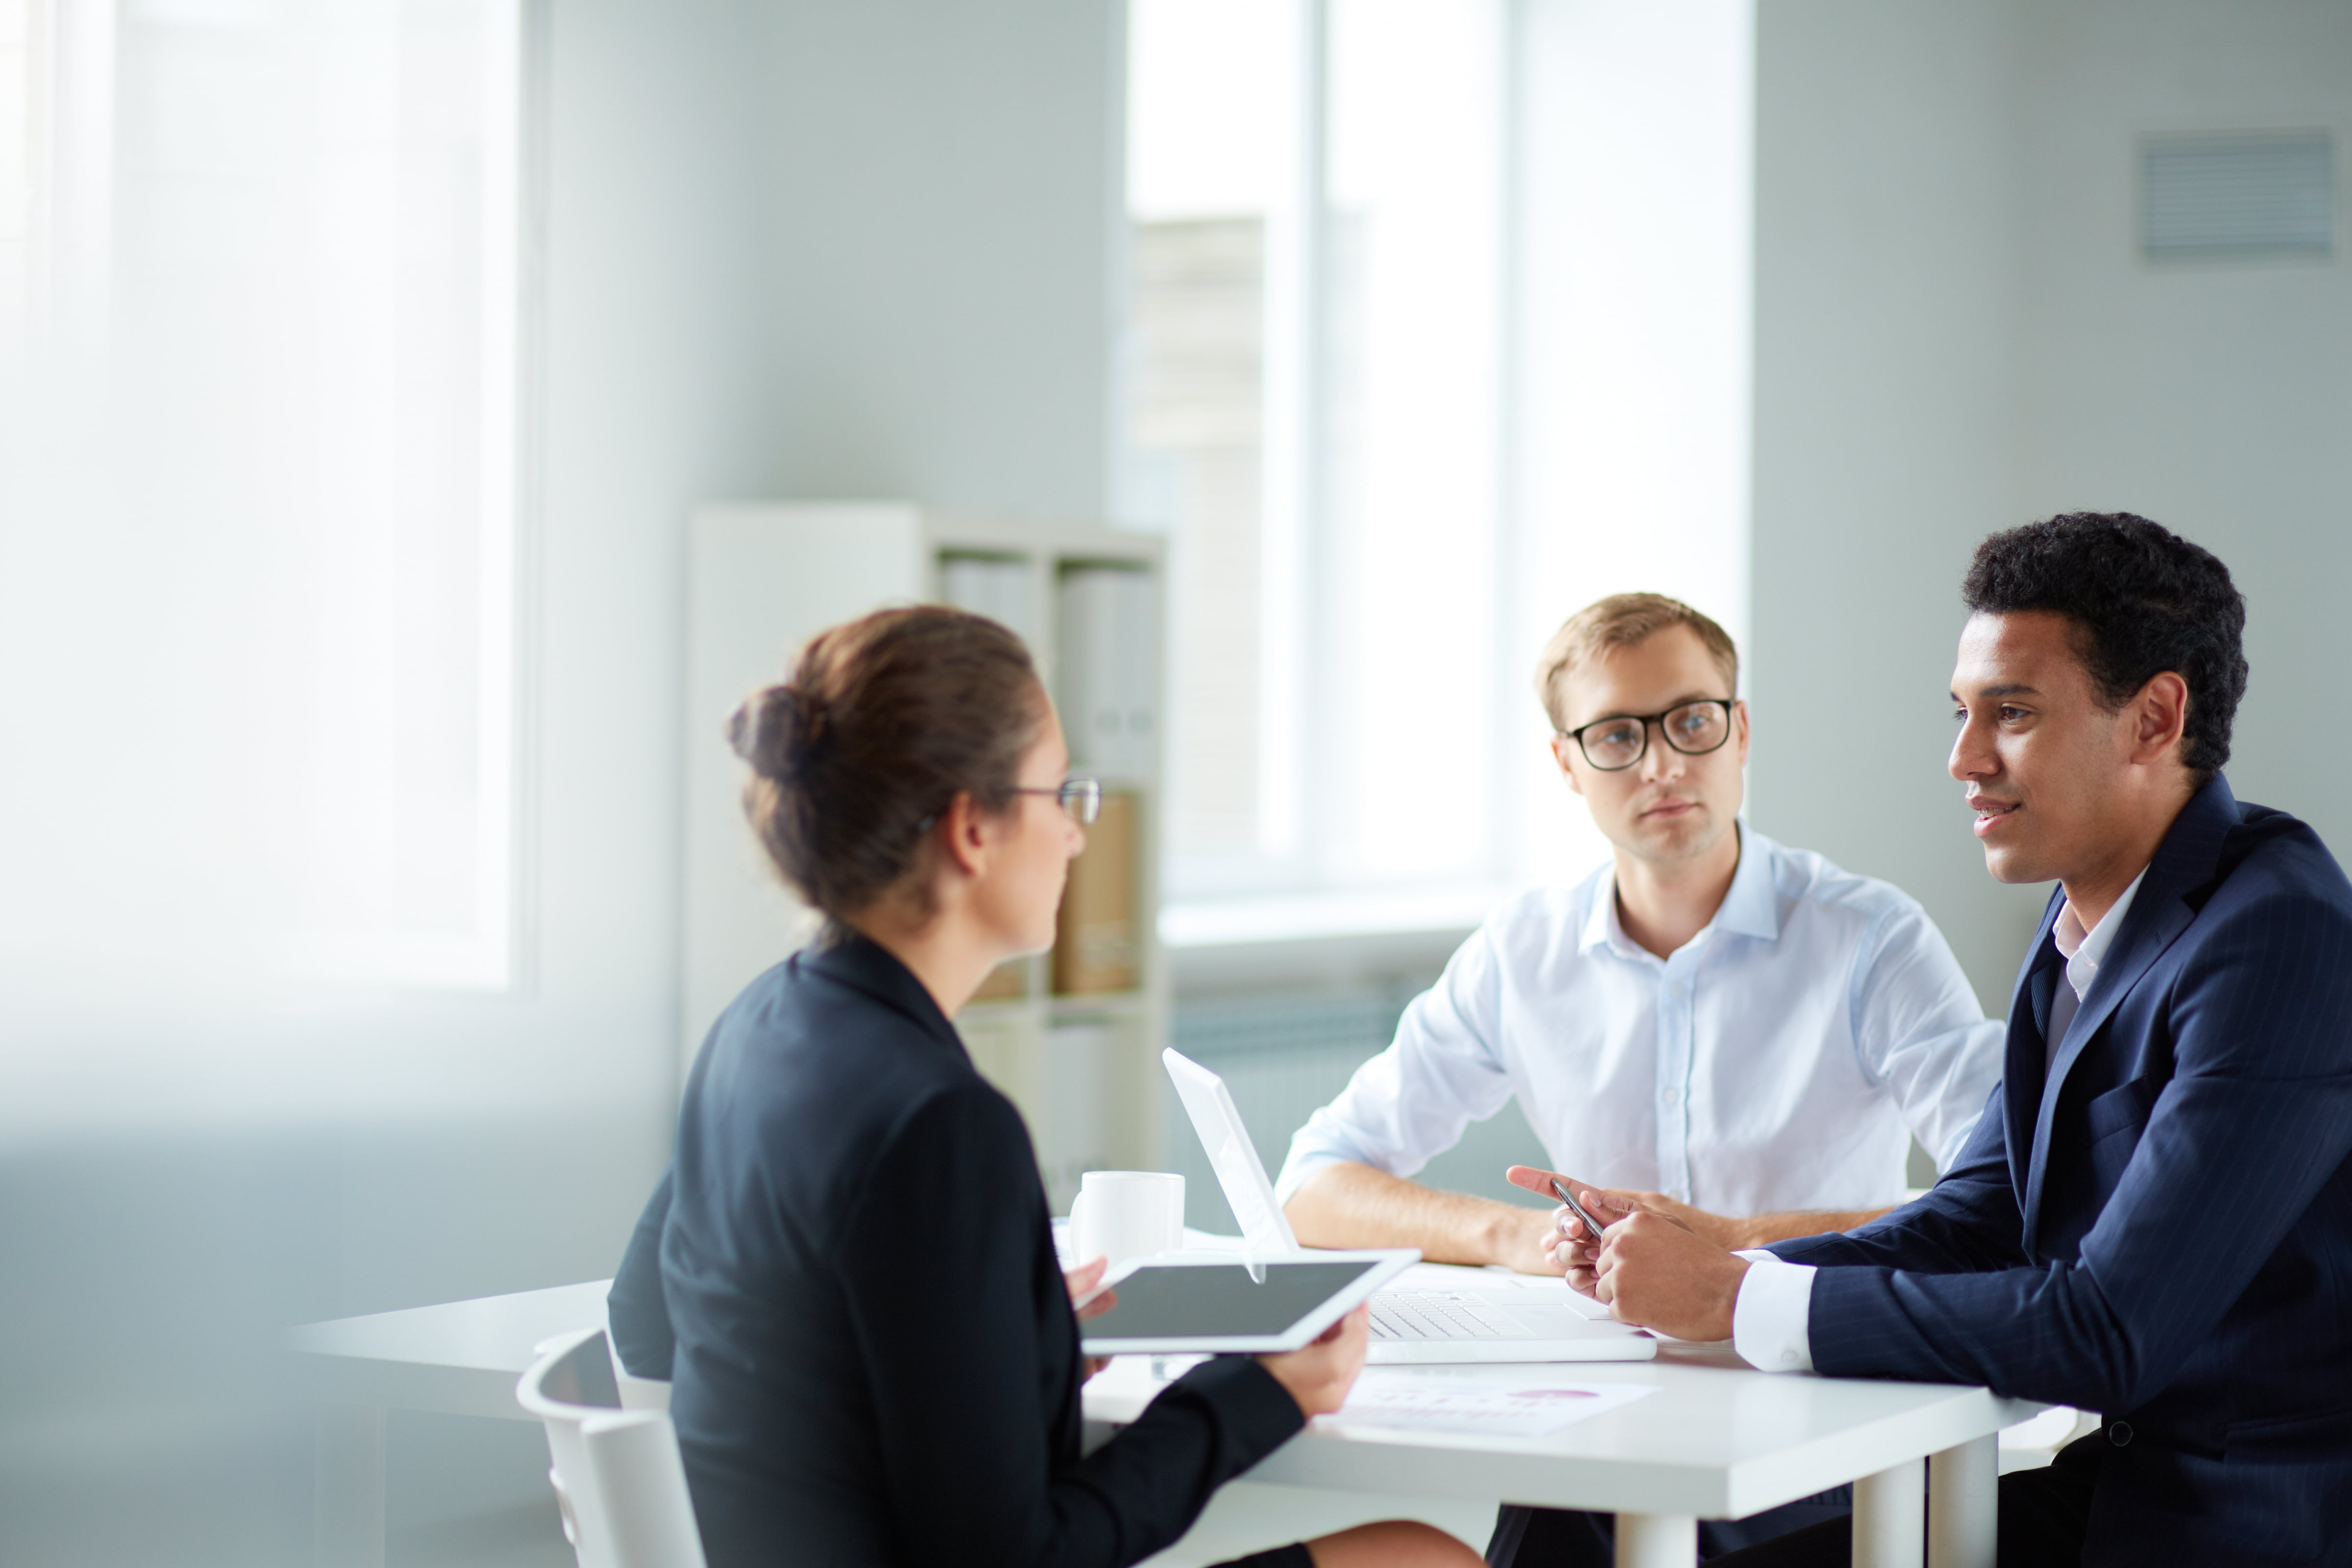 Foolproof interviewing image